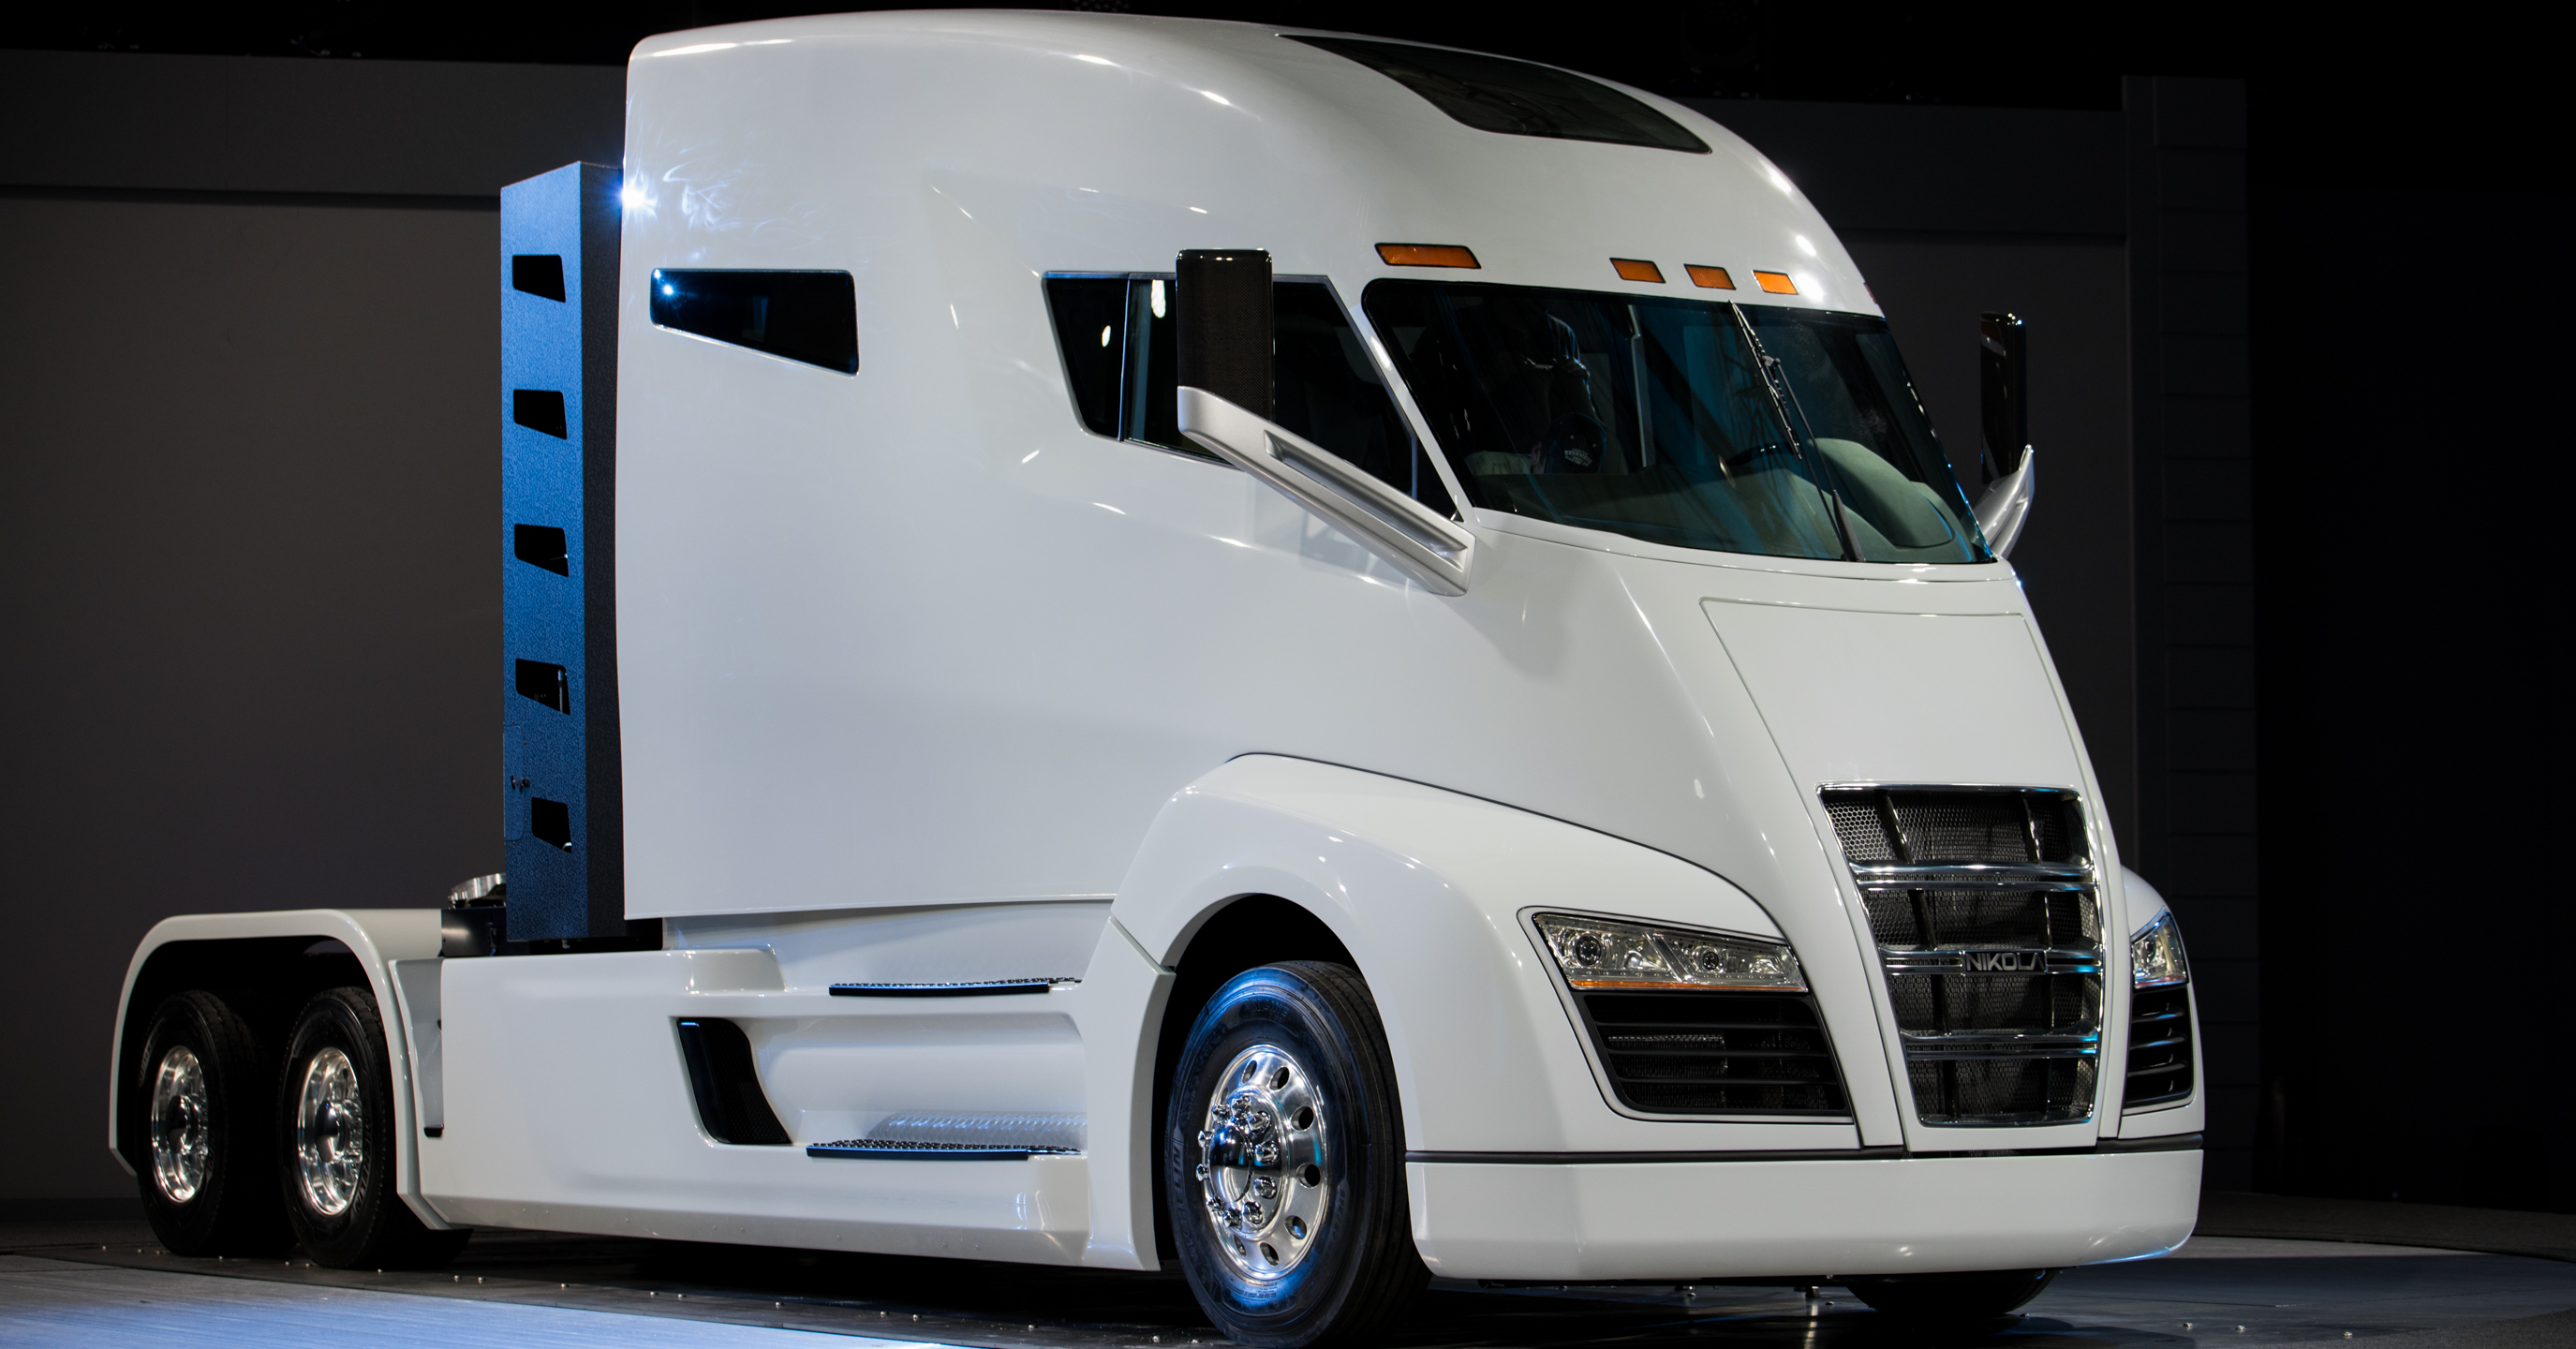 Nikola One commercial electric vehicle